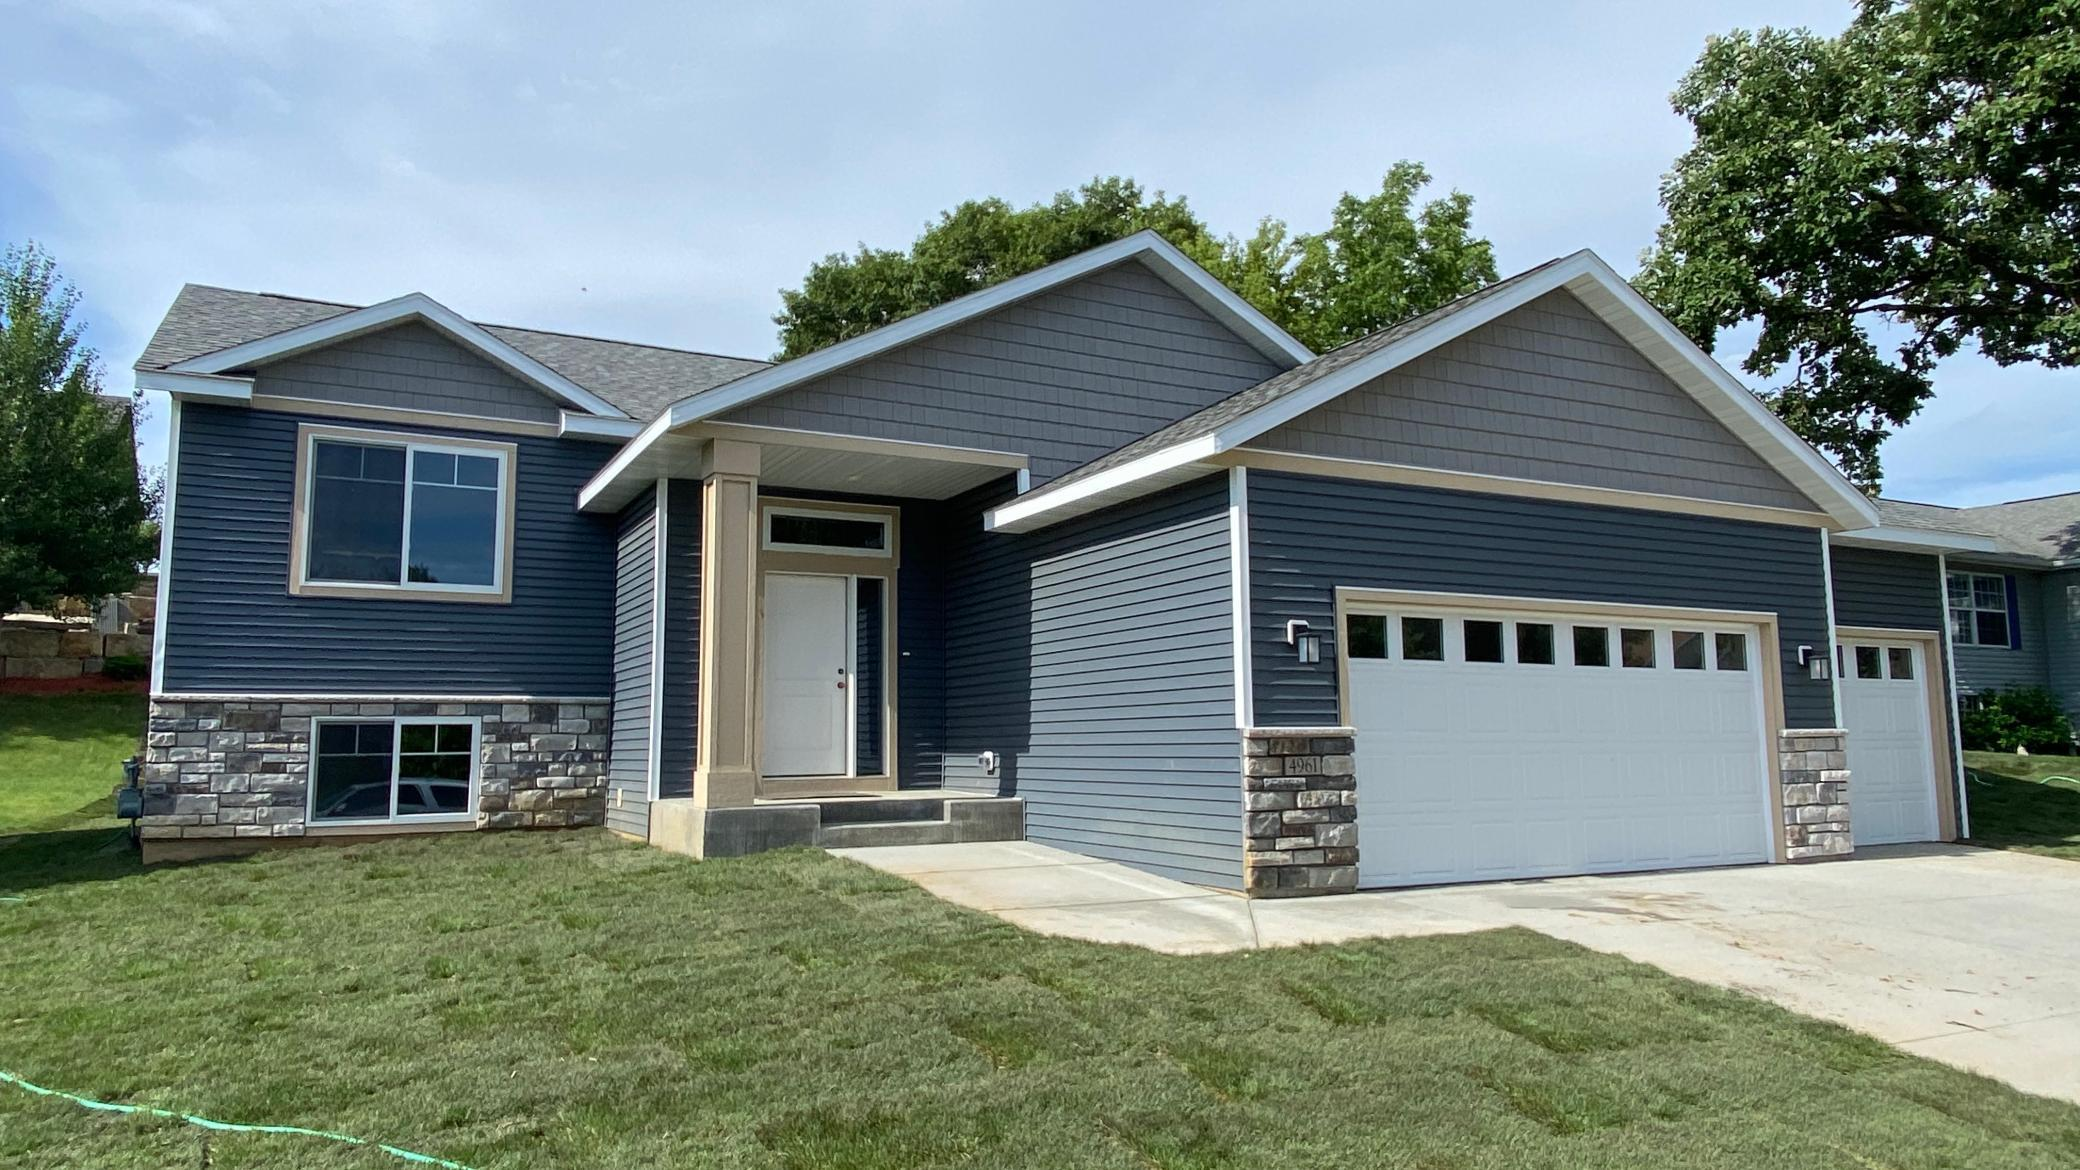 4961 3rd NW, Rochester, MN 55901 - Rochester, MN real estate listing